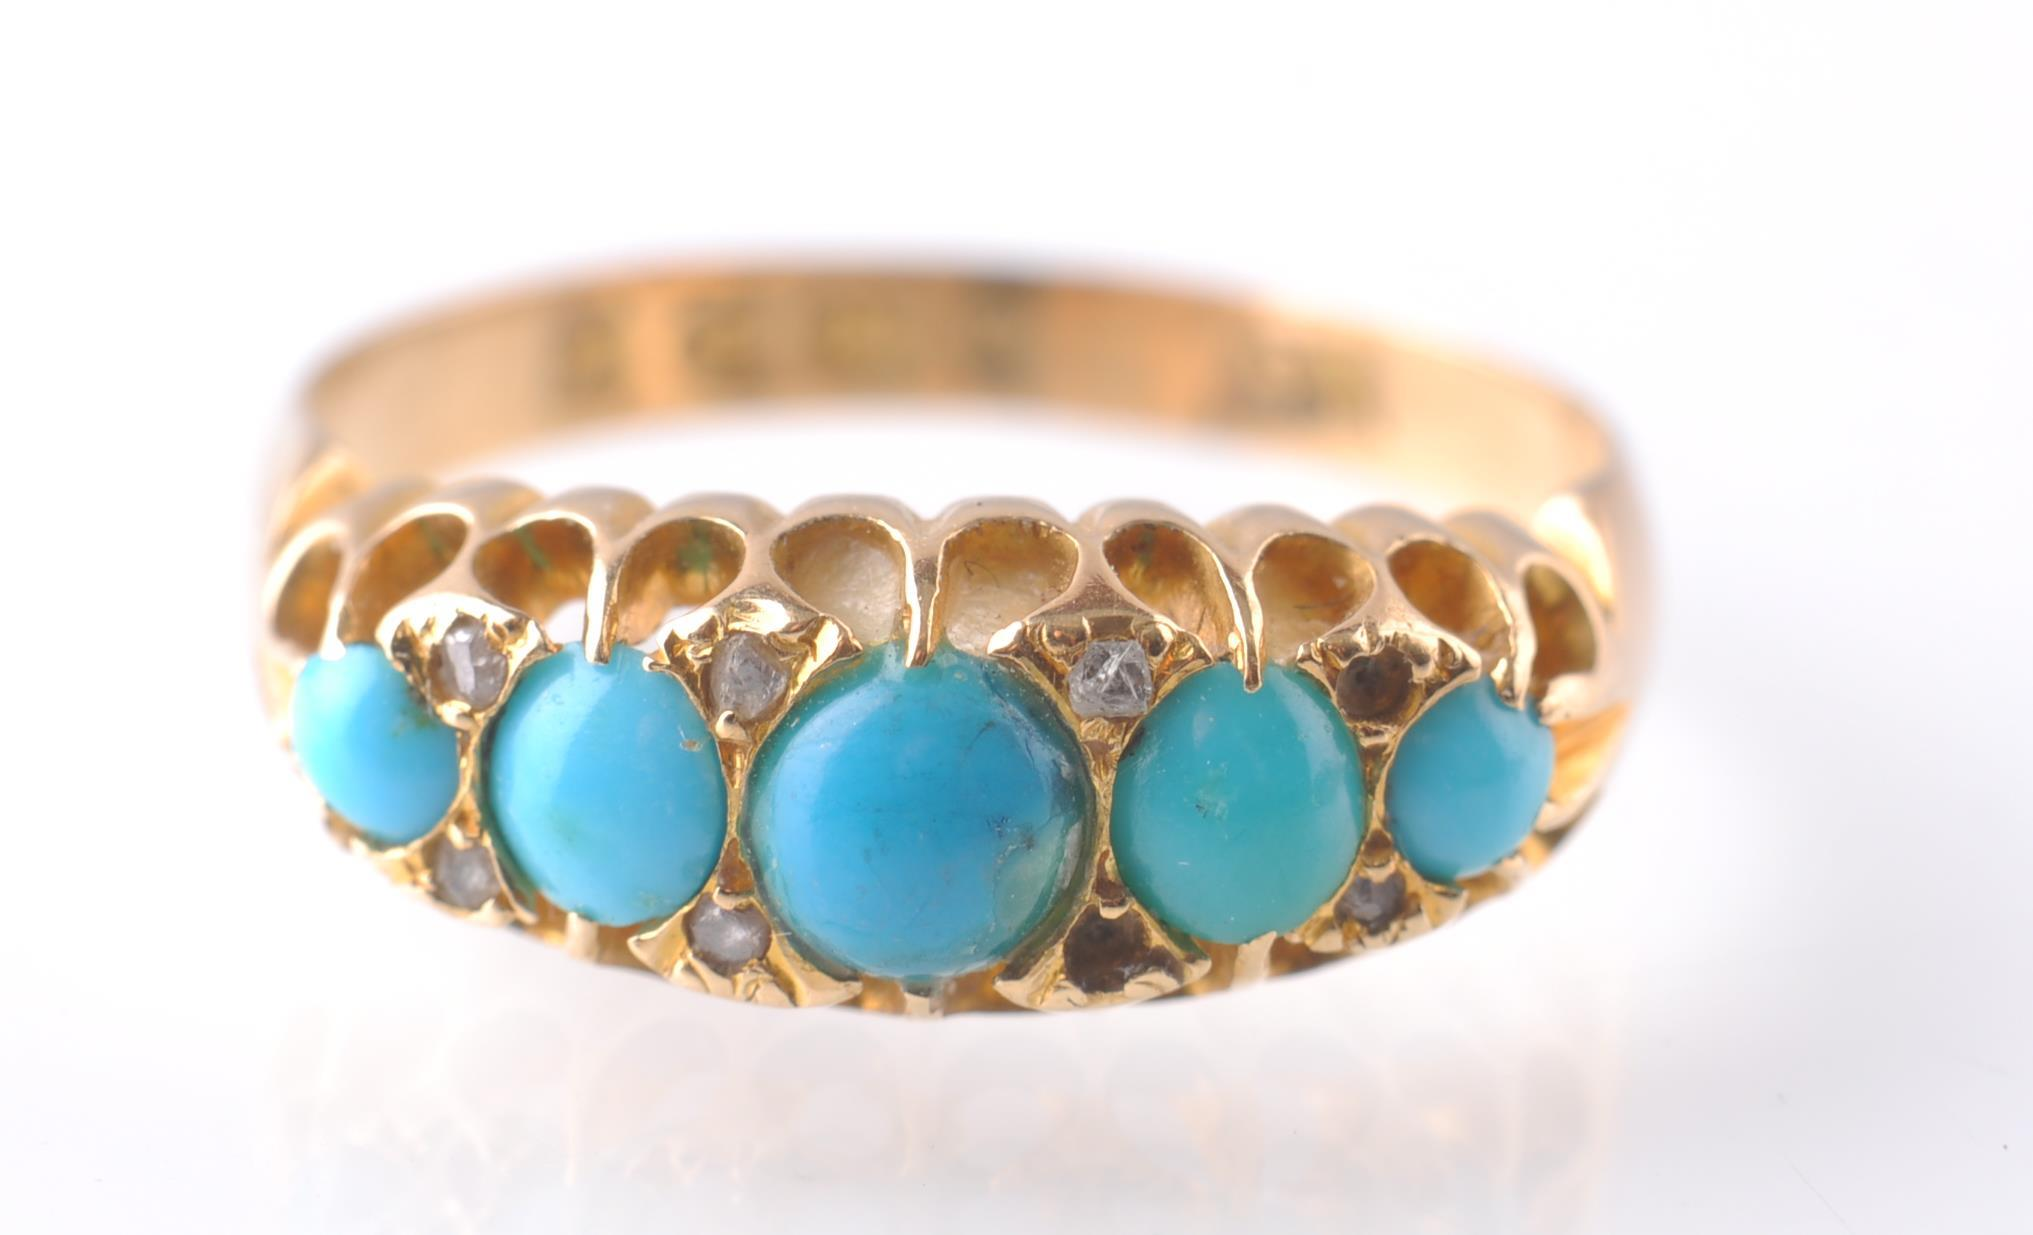 Lot 80 - An 18CT GOLD & TURQUOISE GYPSY RING - 1915